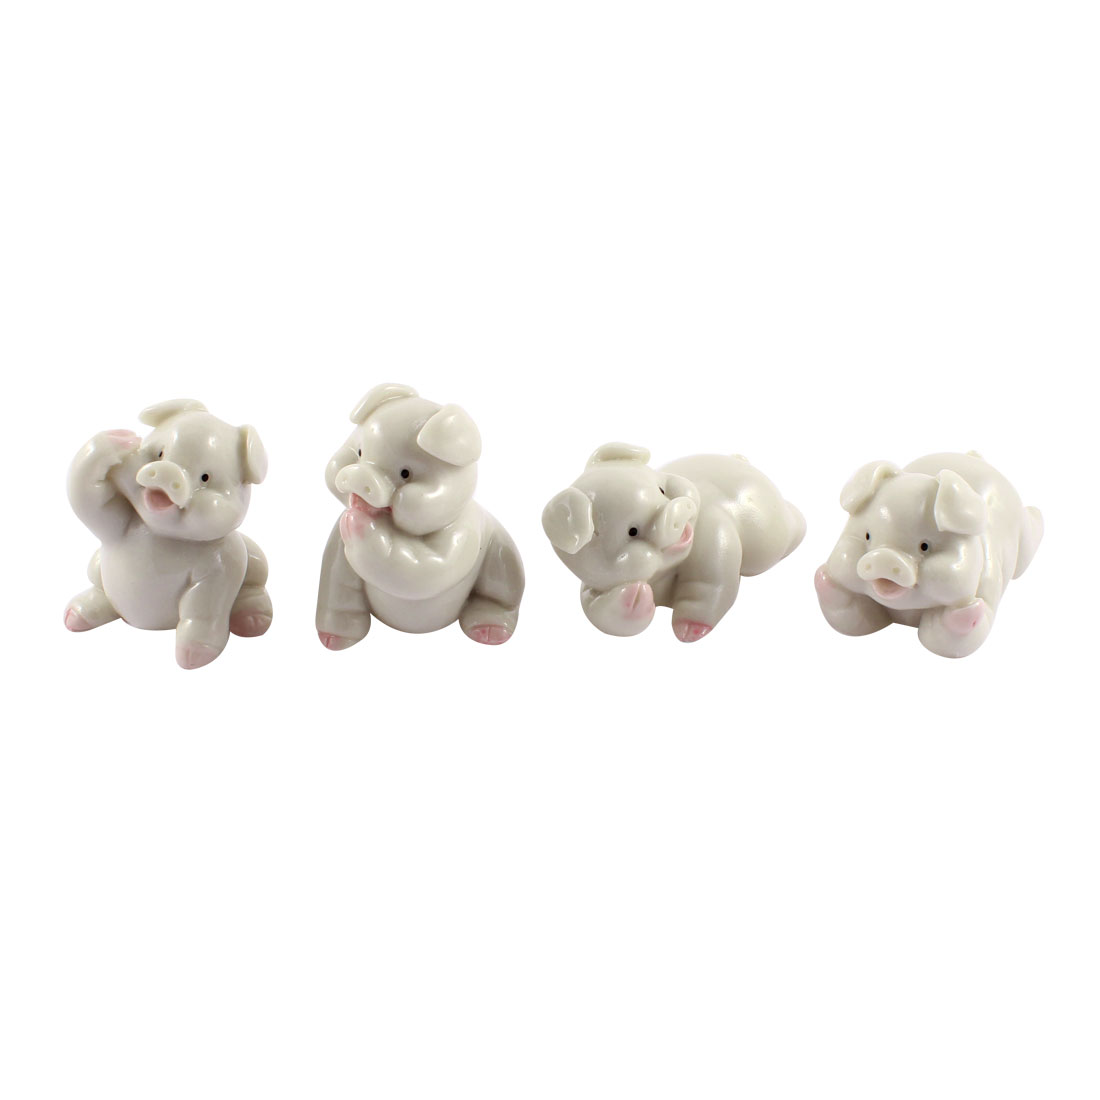 Hand Carved Ceramic Pig Statue Figurine Crafts Decor 4 in 1 White